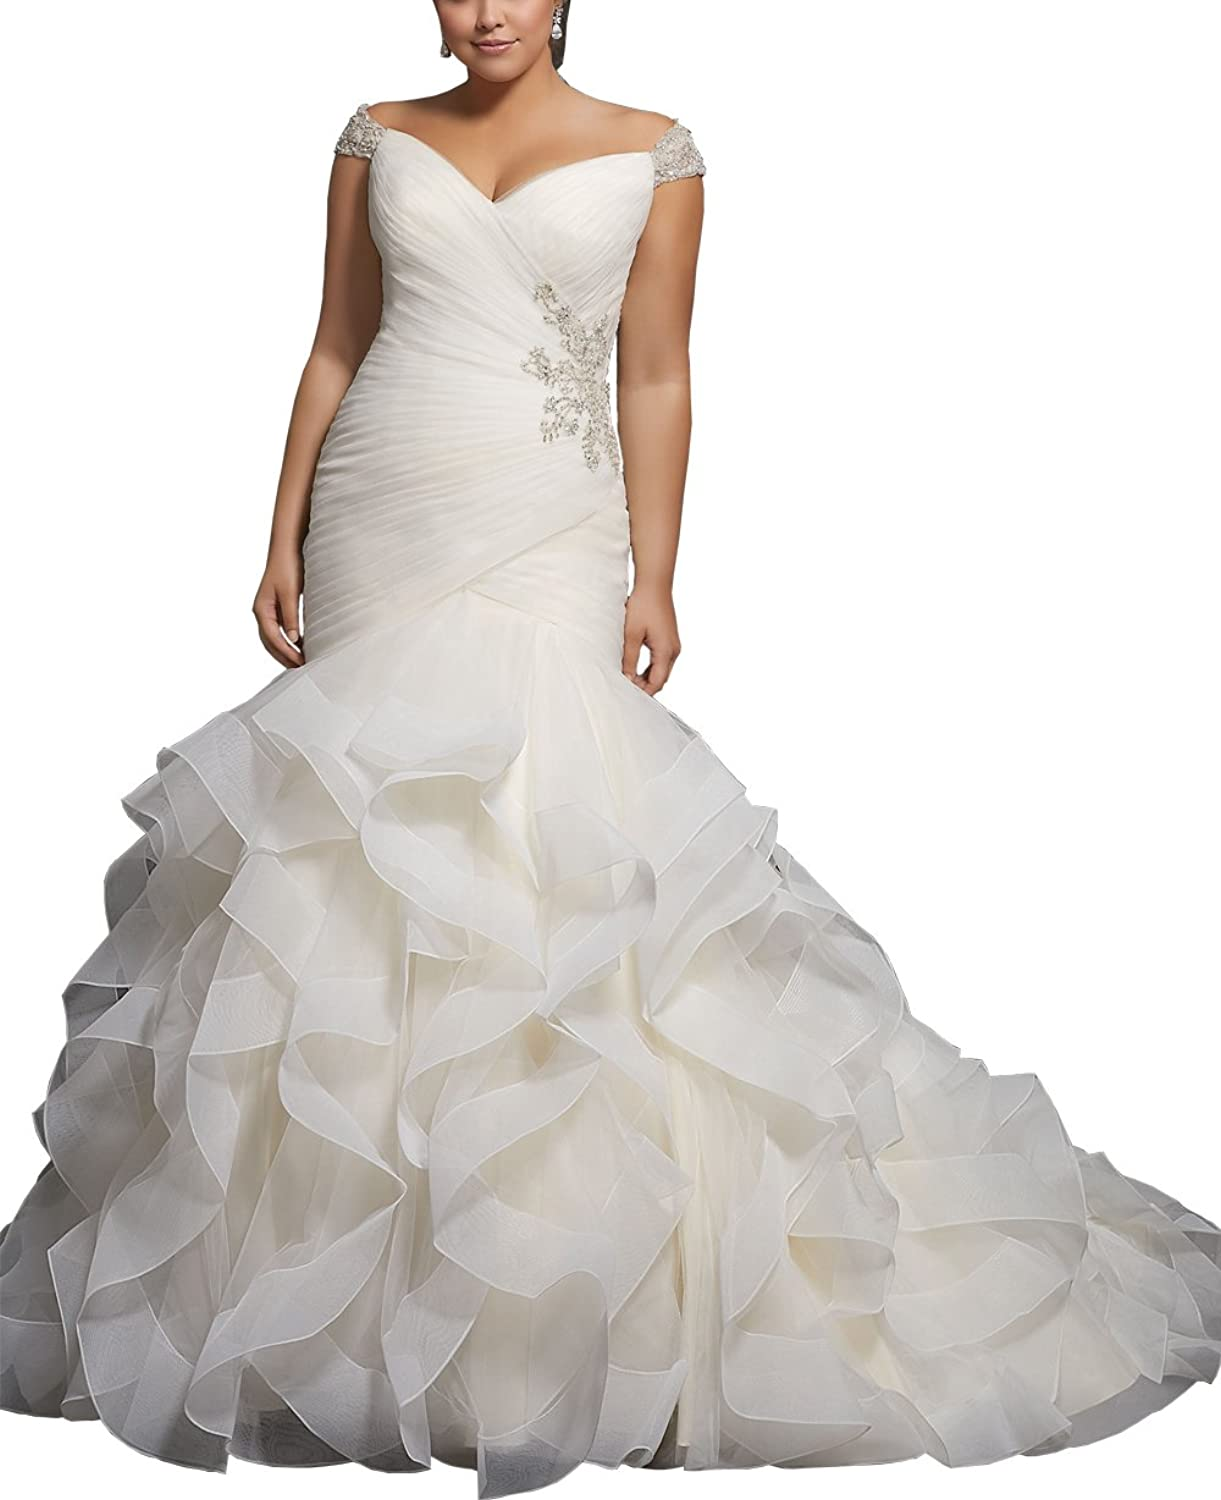 Now and Forever Women's Beaded Cap Sleeve Mermaid Wedding Dress Pleat Ruffles Bridal Gown